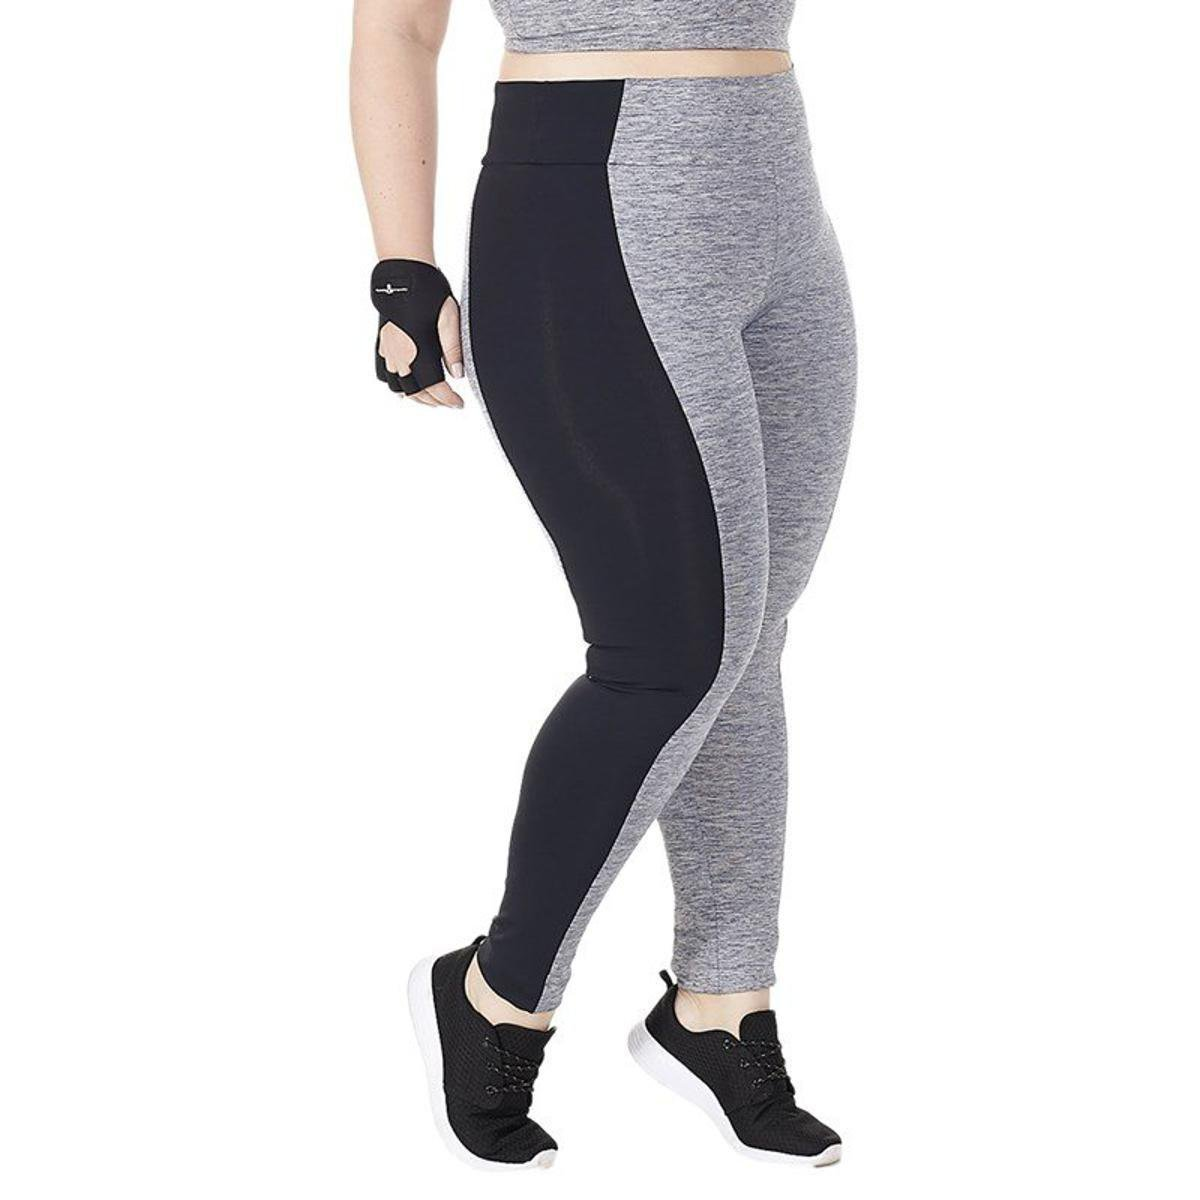 Calça E Legend Legging Legging Moviment Size Plus Calça Cinza rxfnrzY4